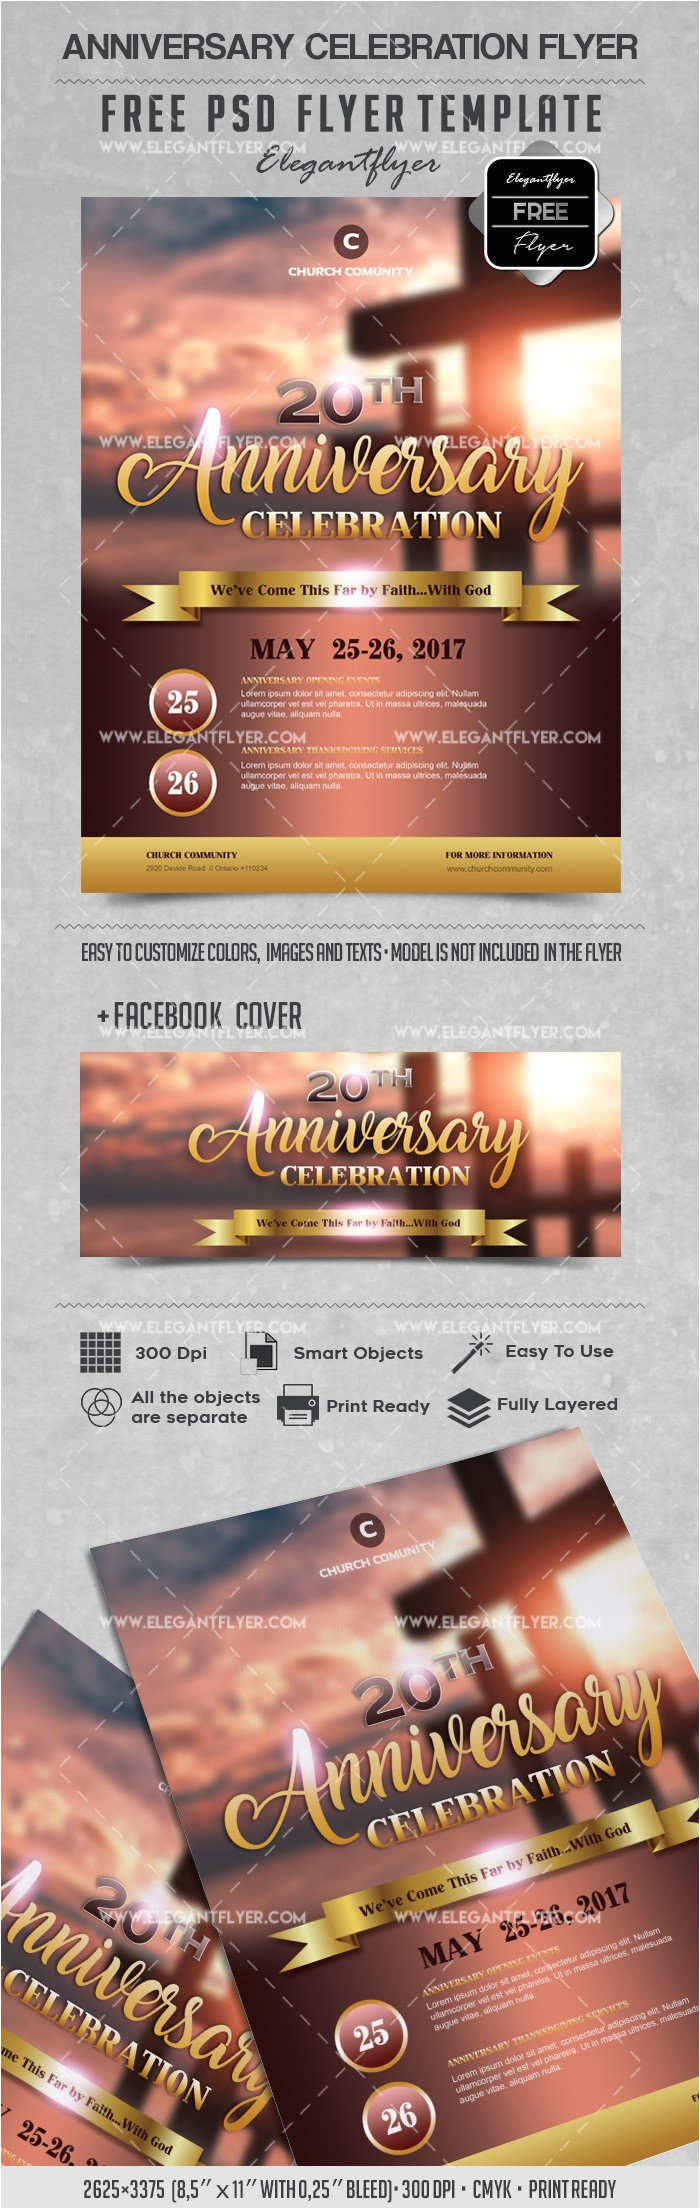 anniversary selebration flyer psd template facebook cover